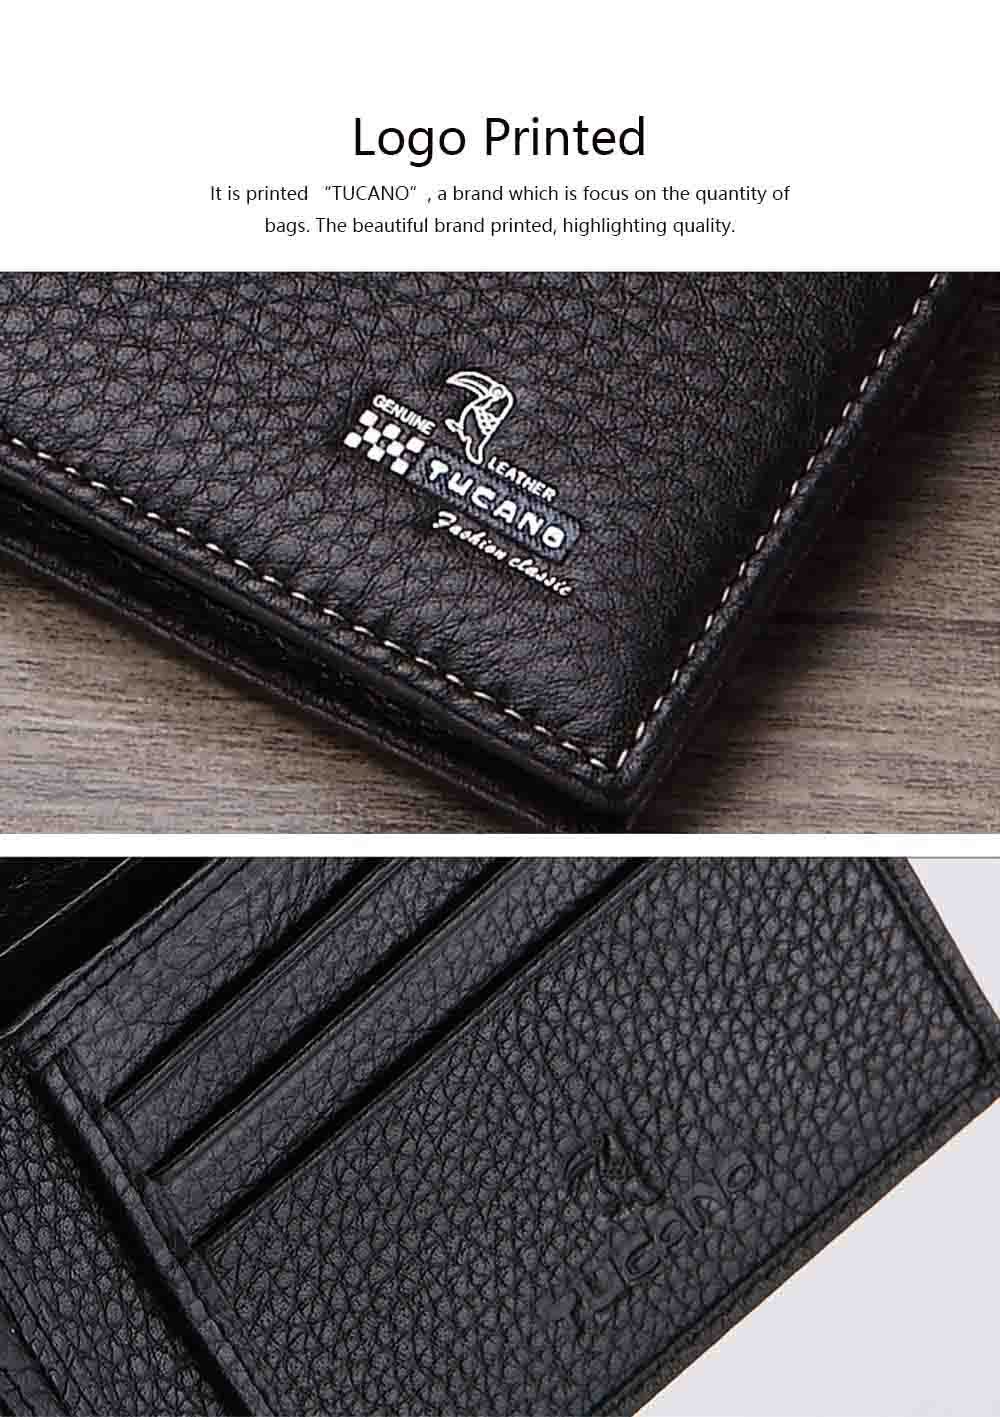 Bifold Side Flip Wallet, High-End Business Men Wallet, Men's Multifunctional Handbag, Extra Capacity Travel Wallet 3